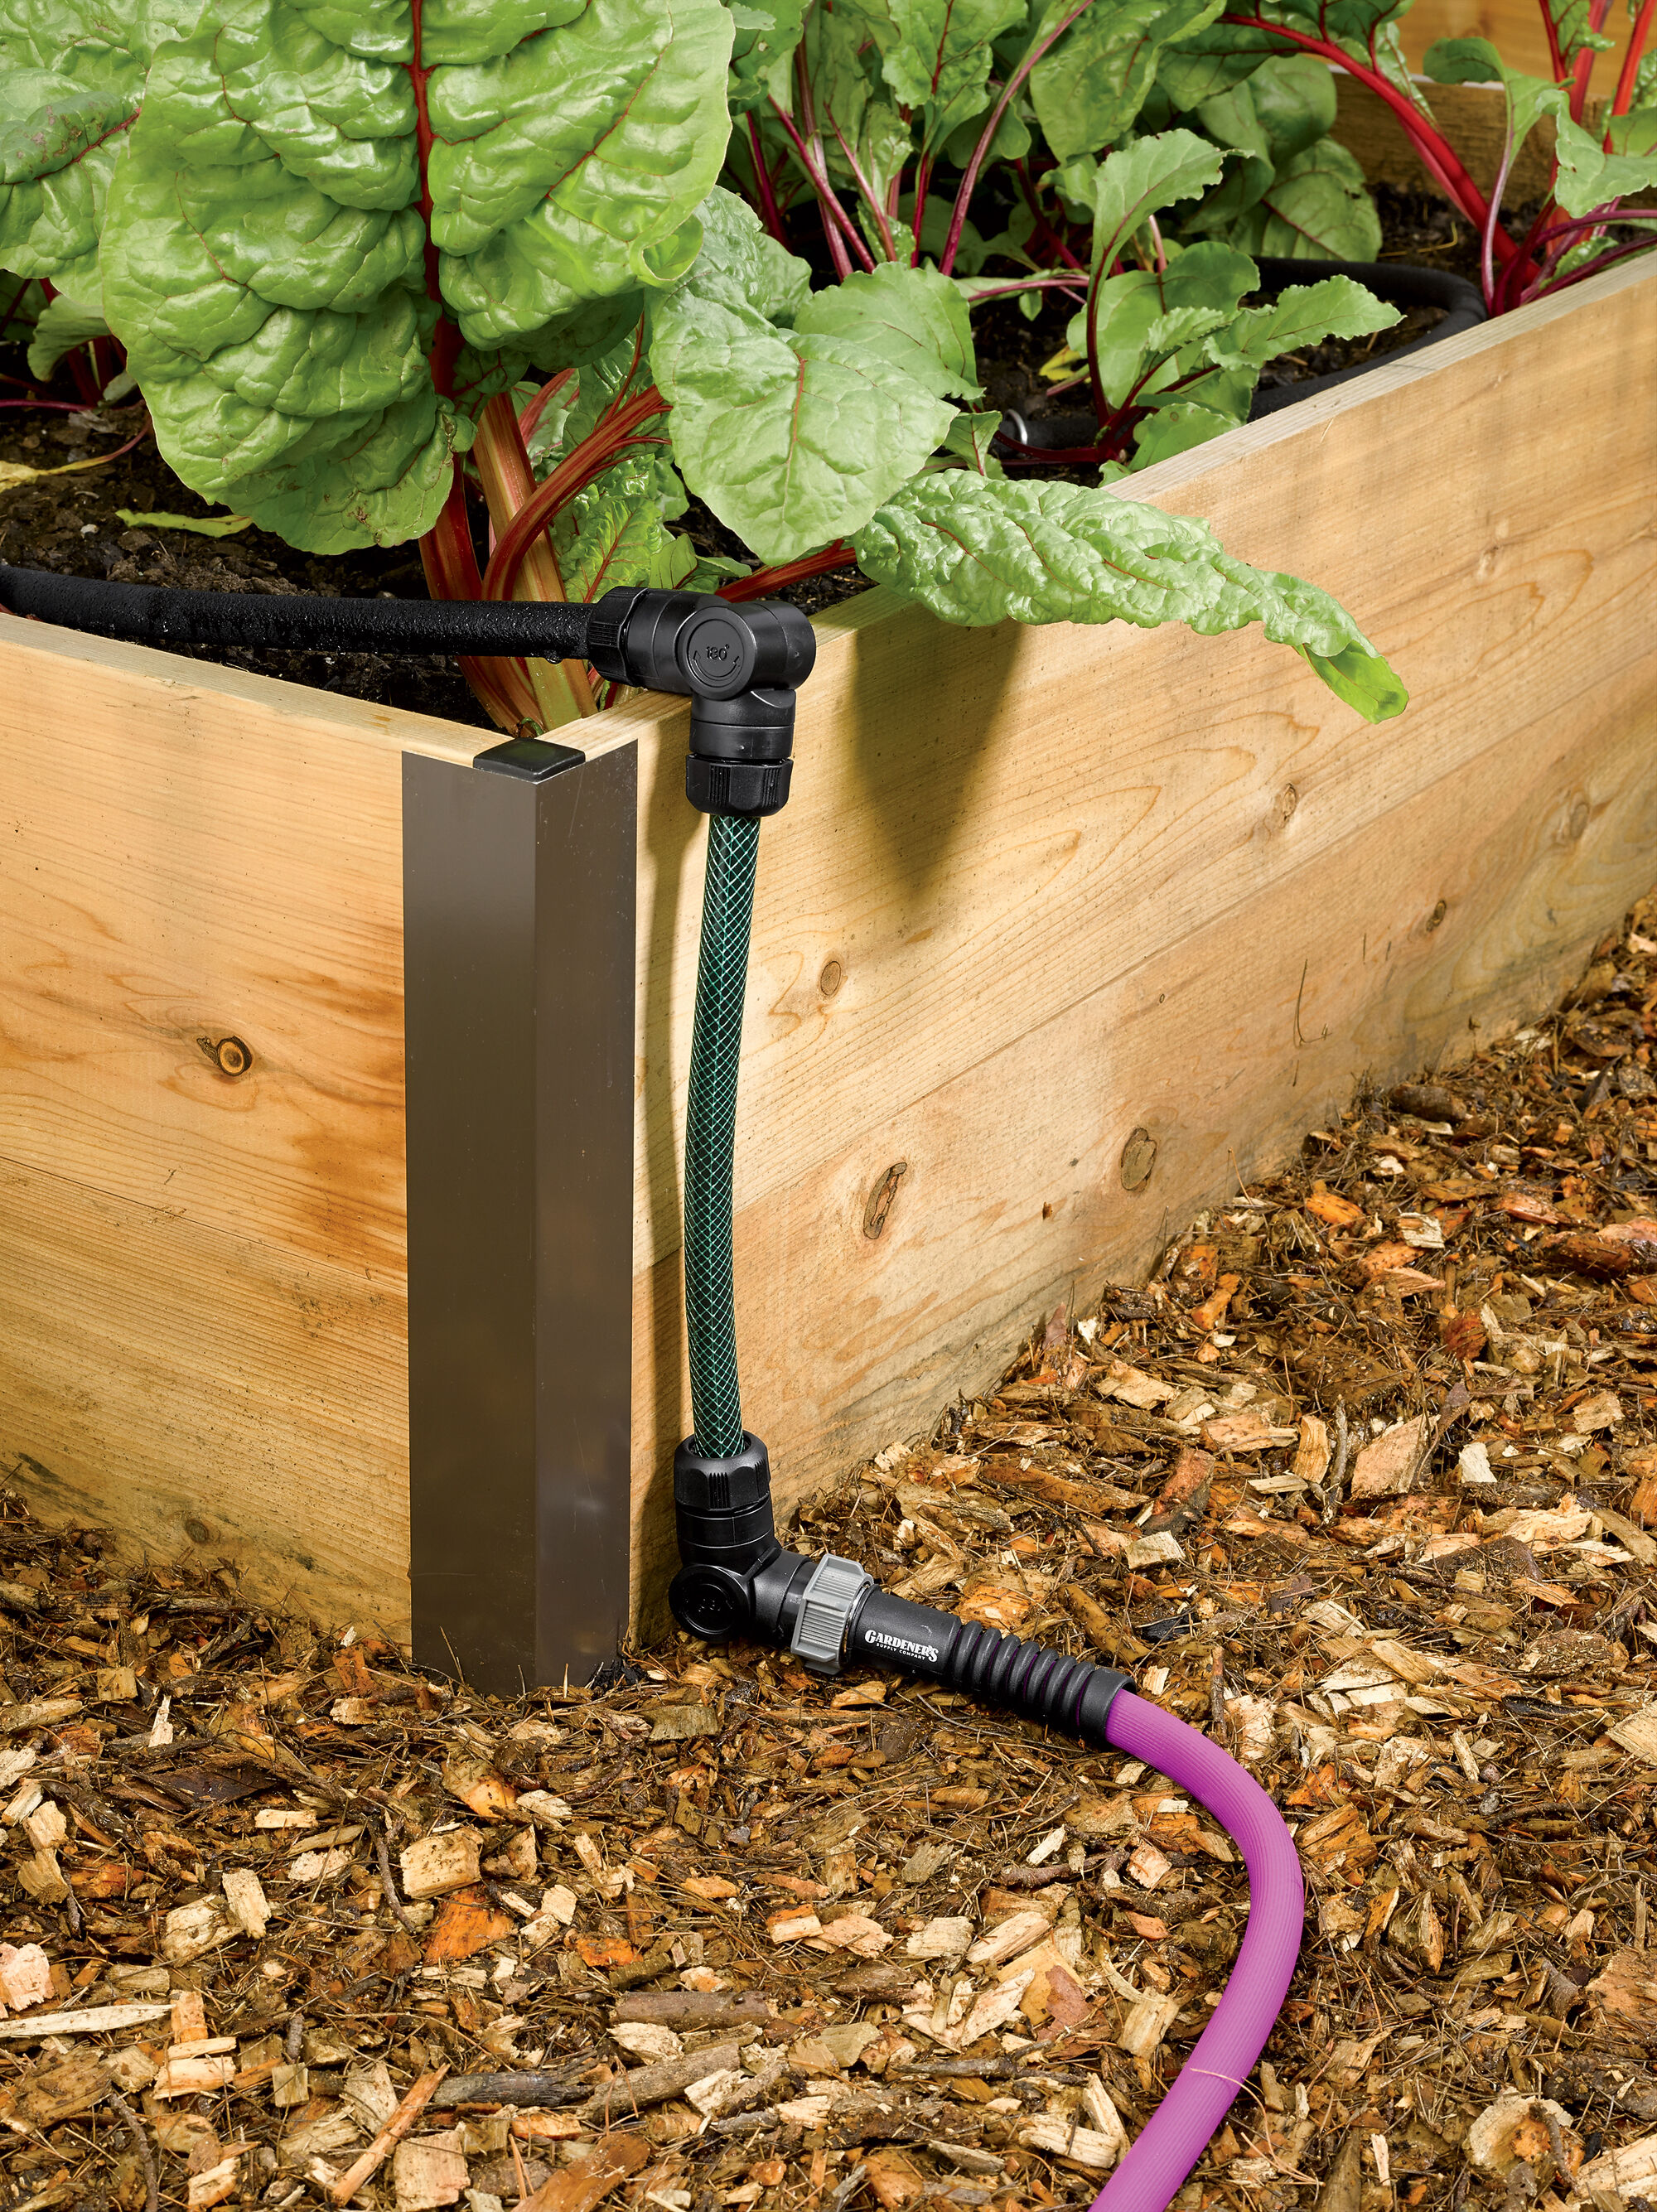 Above Ground Irrigation Systems for Landscaping | DIY ...